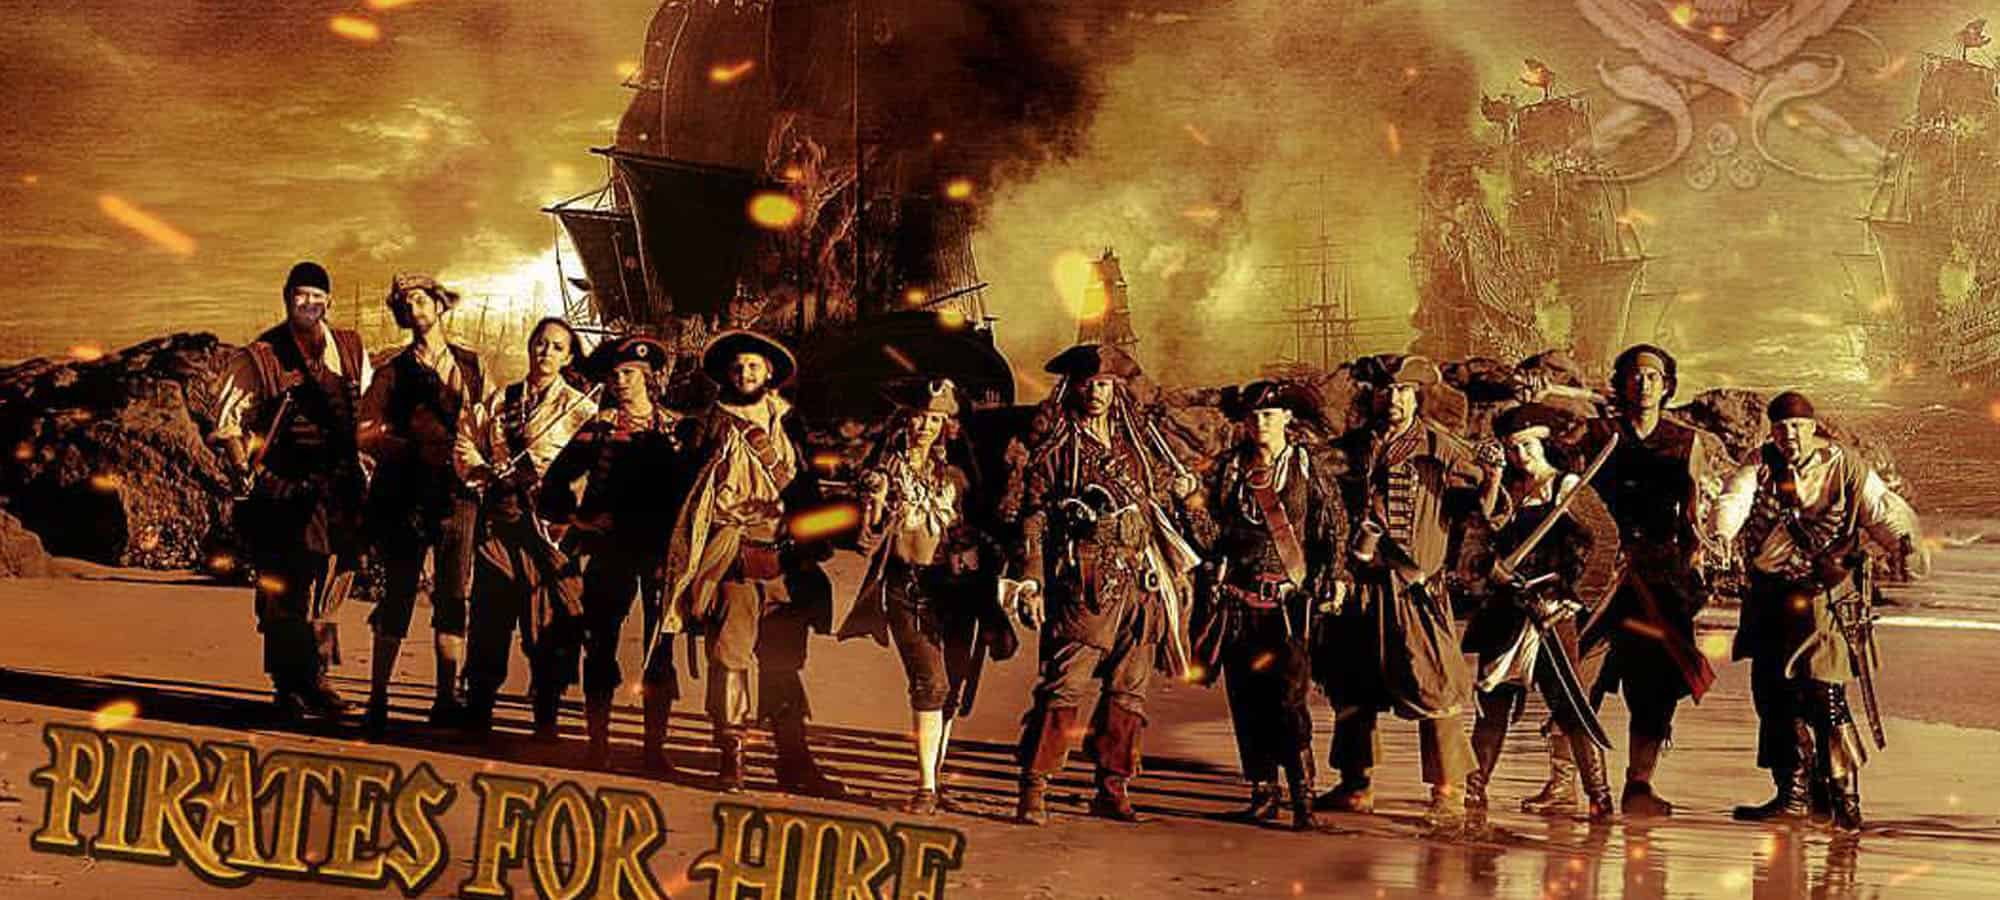 Pirates For Hire- pirate entertainment for parties, fairs, events